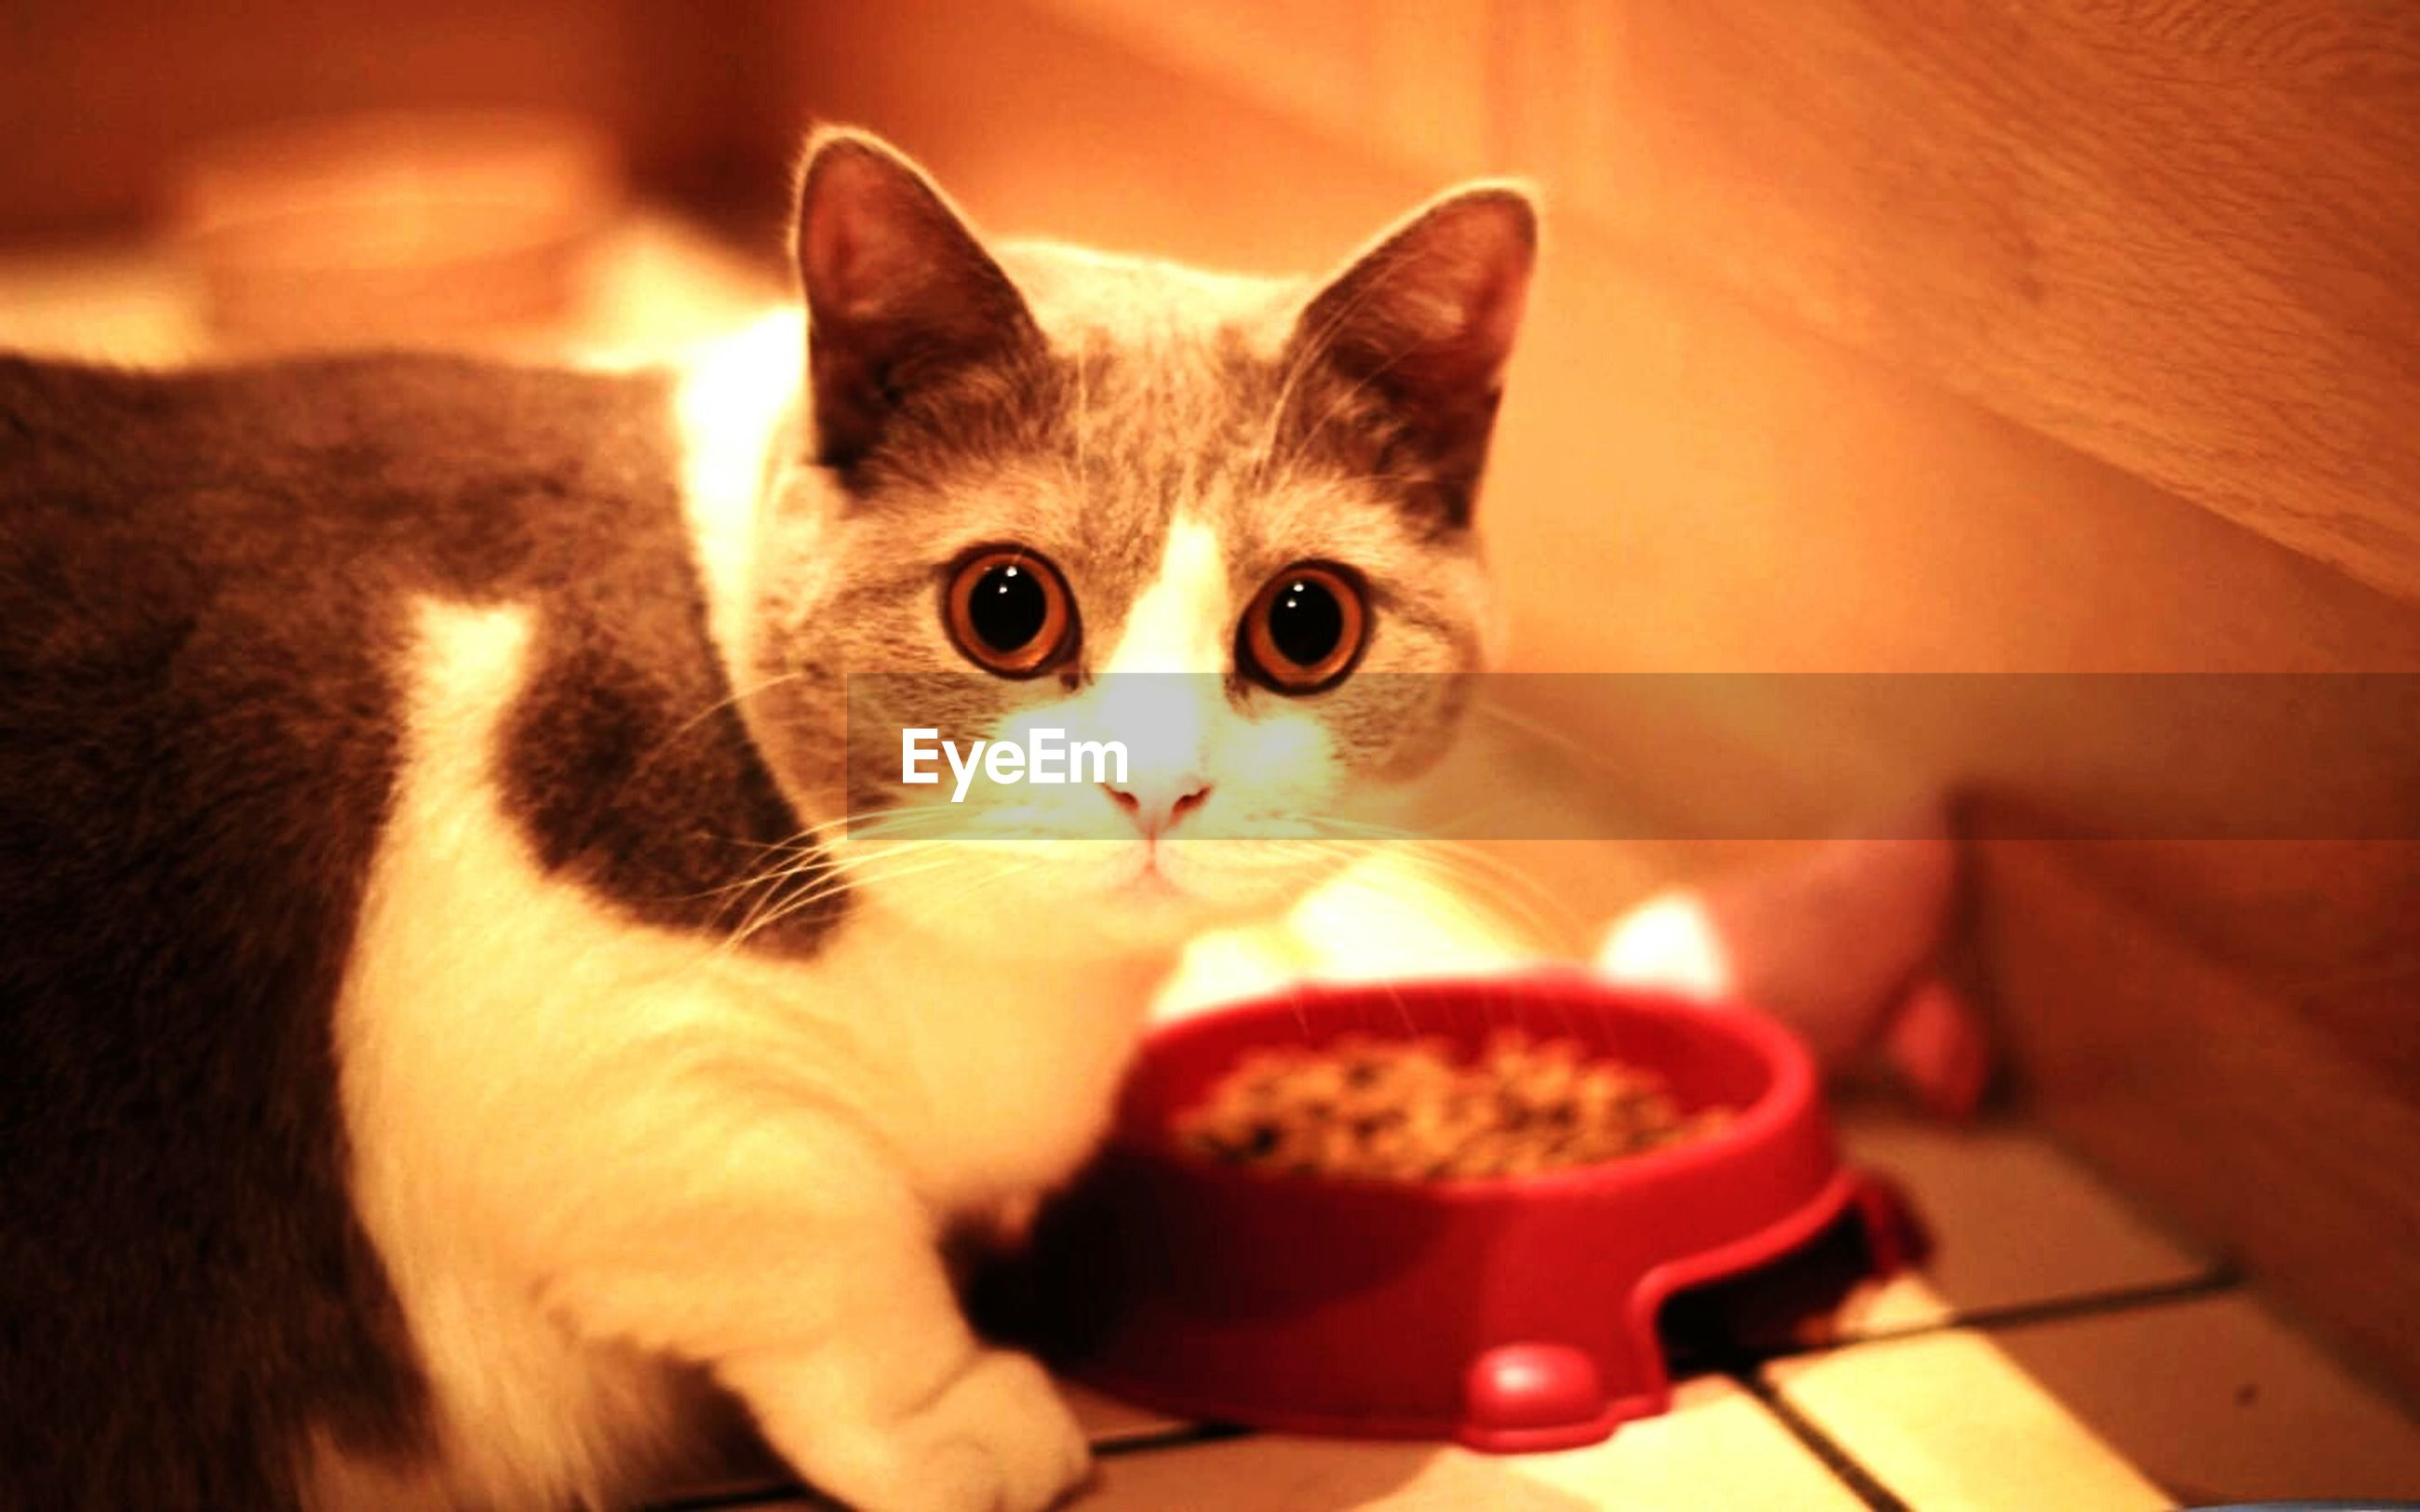 pets, domestic animals, domestic cat, indoors, cat, looking at camera, animal themes, portrait, mammal, one animal, feline, whisker, home interior, table, kitten, close-up, cute, sitting, young animal, animal eye